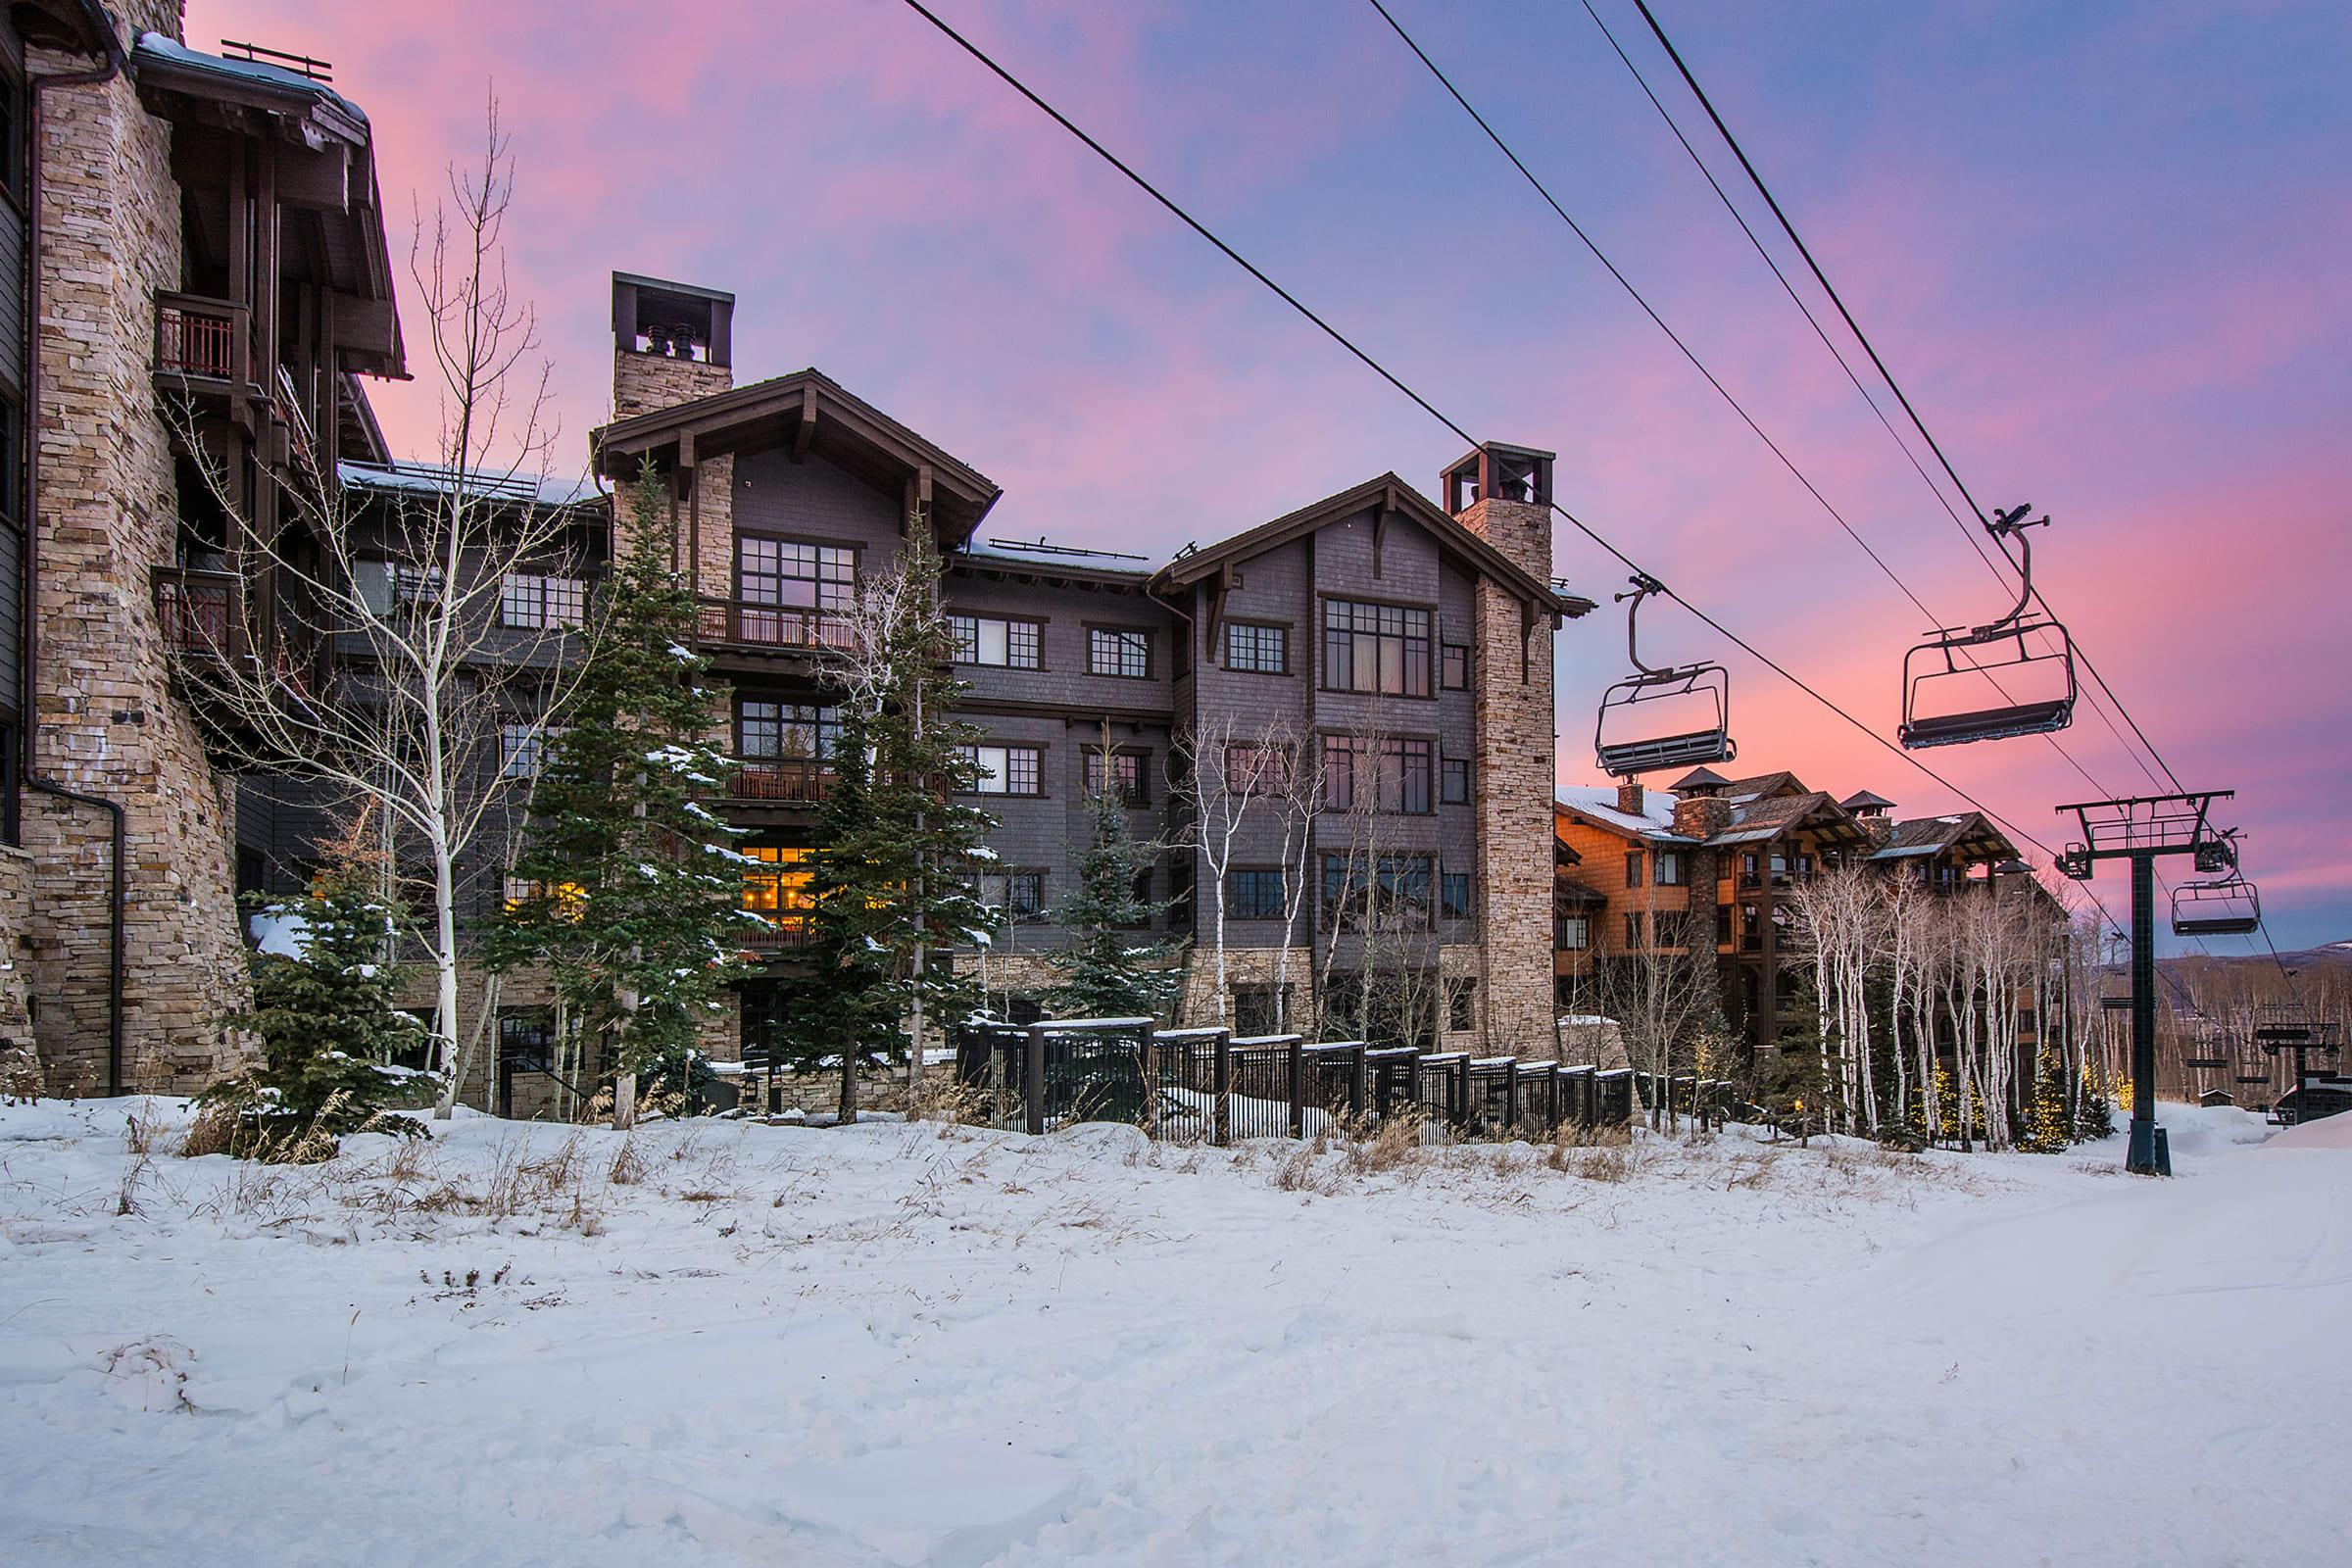 Stylish Ski-in/Ski-out Condo with Community Hot Tubs